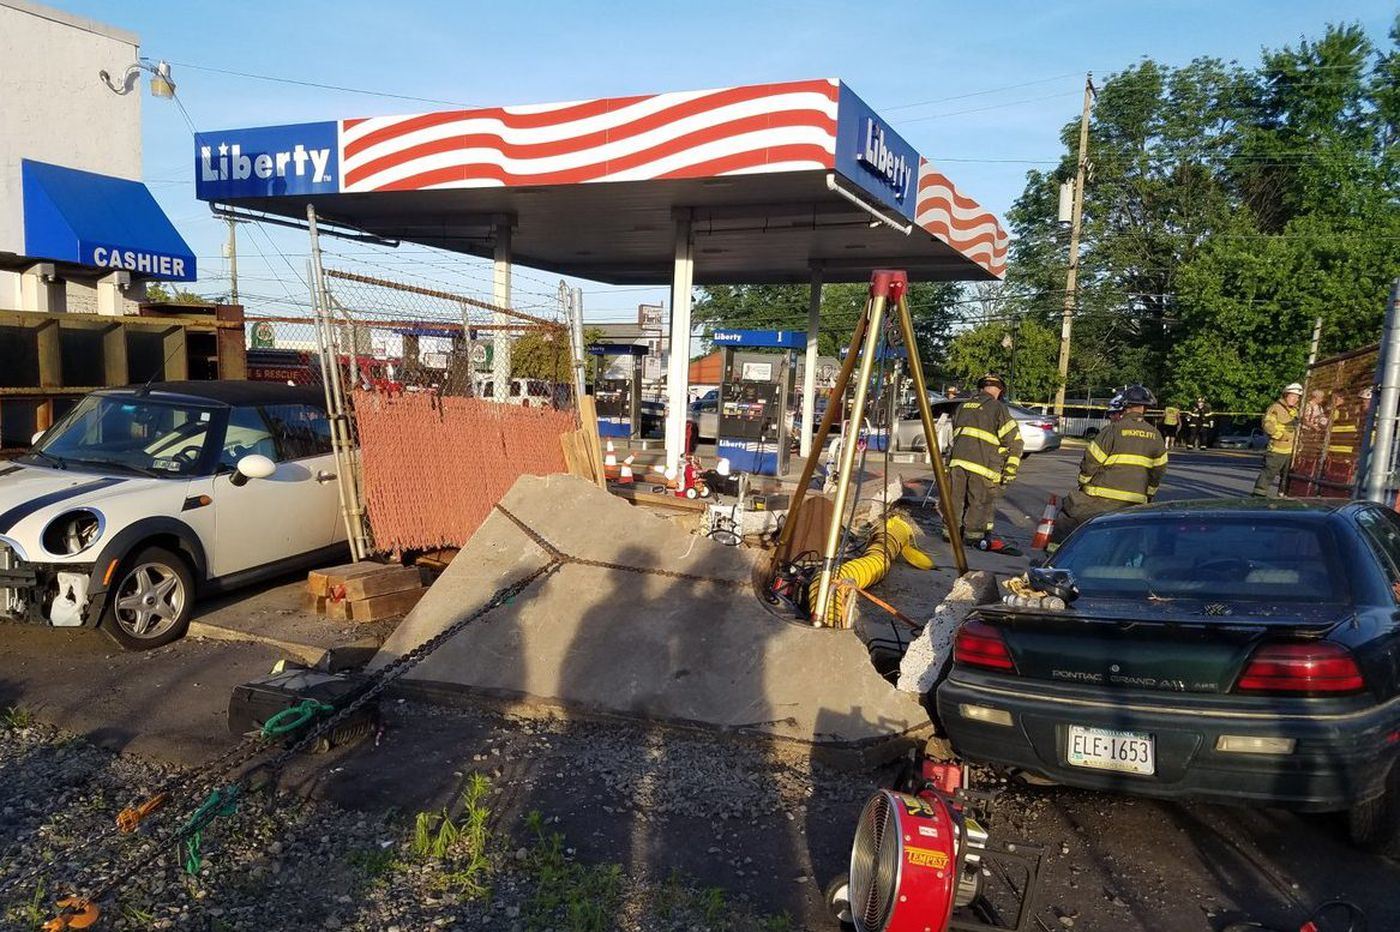 Rescue efforts end for man trapped underground in Bensalem gas station blast